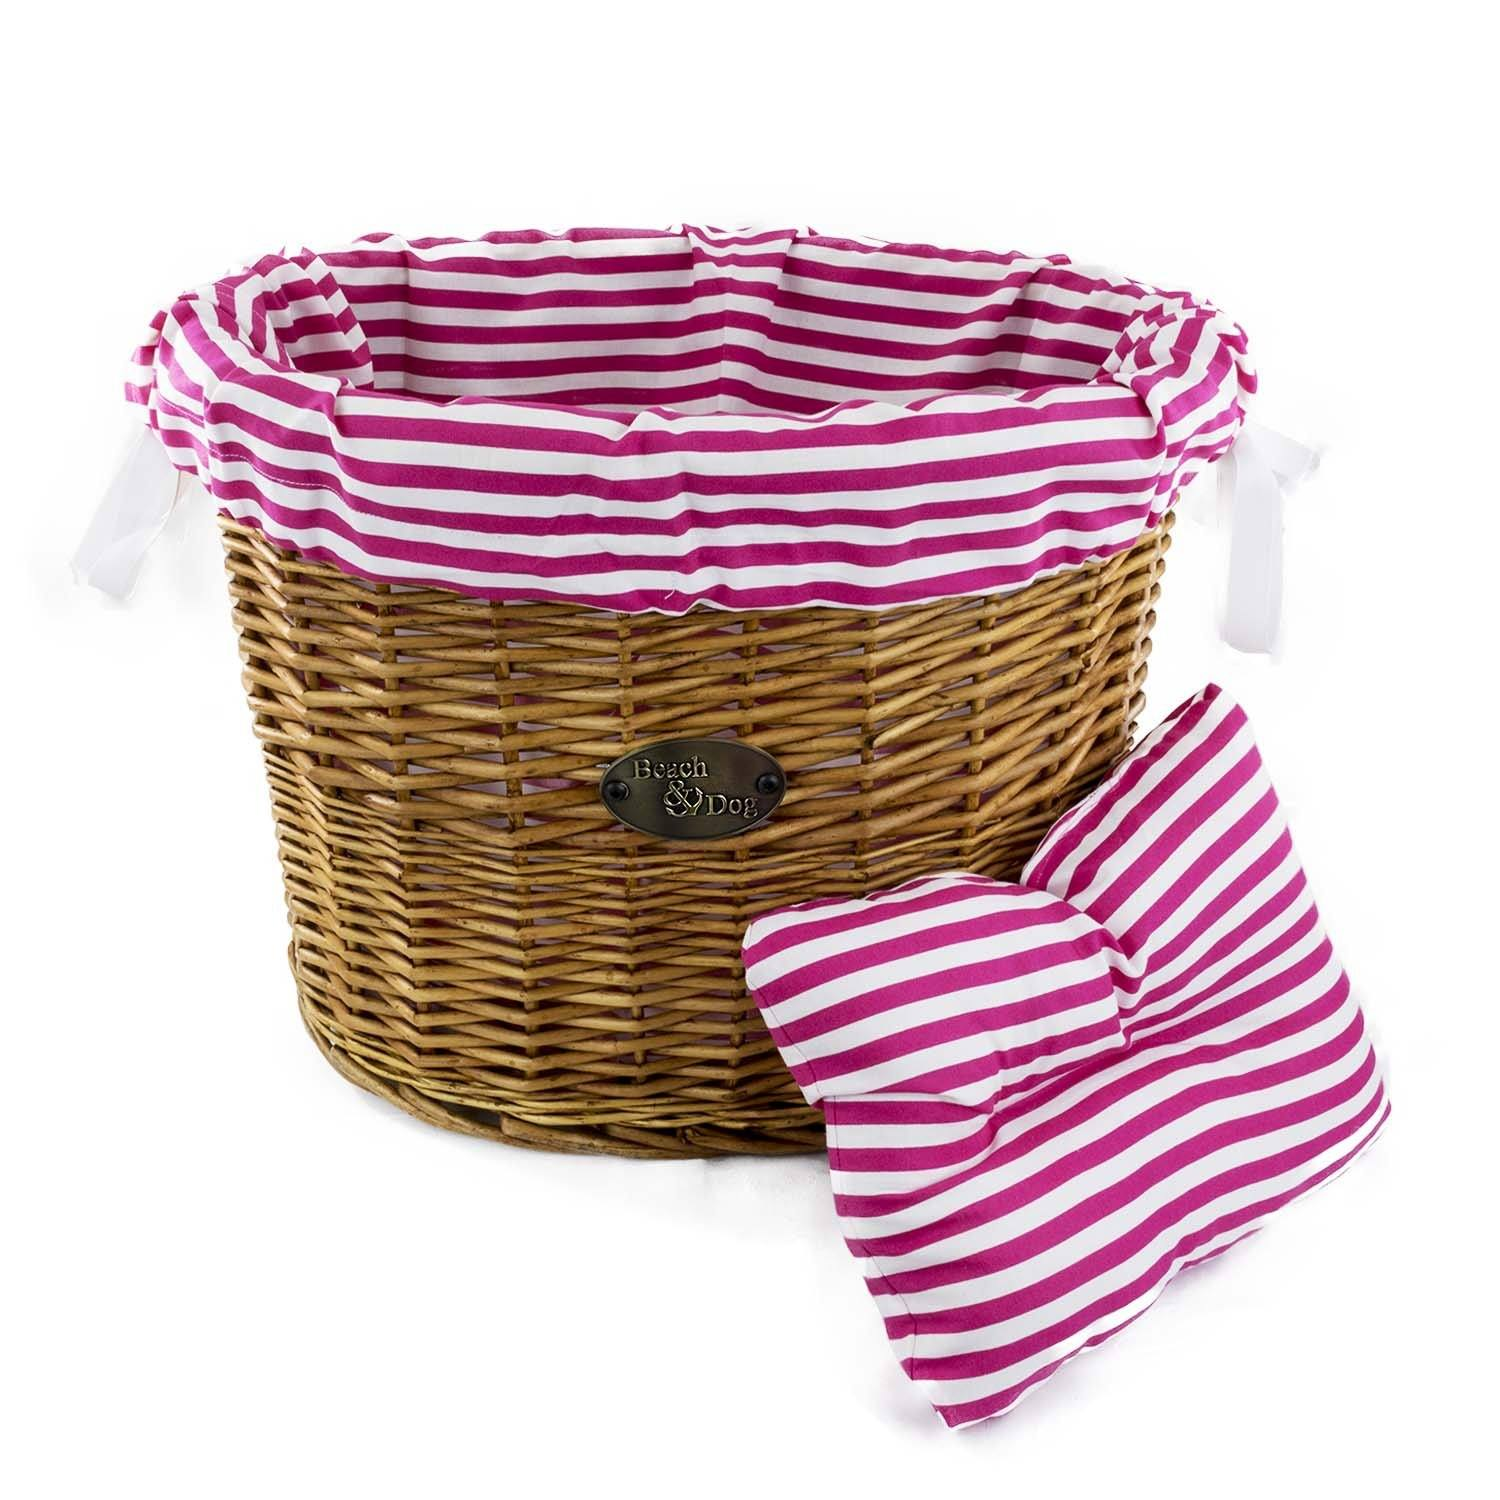 Hot Pink Candy Cane Basket Liner - Beach & Dog Co.